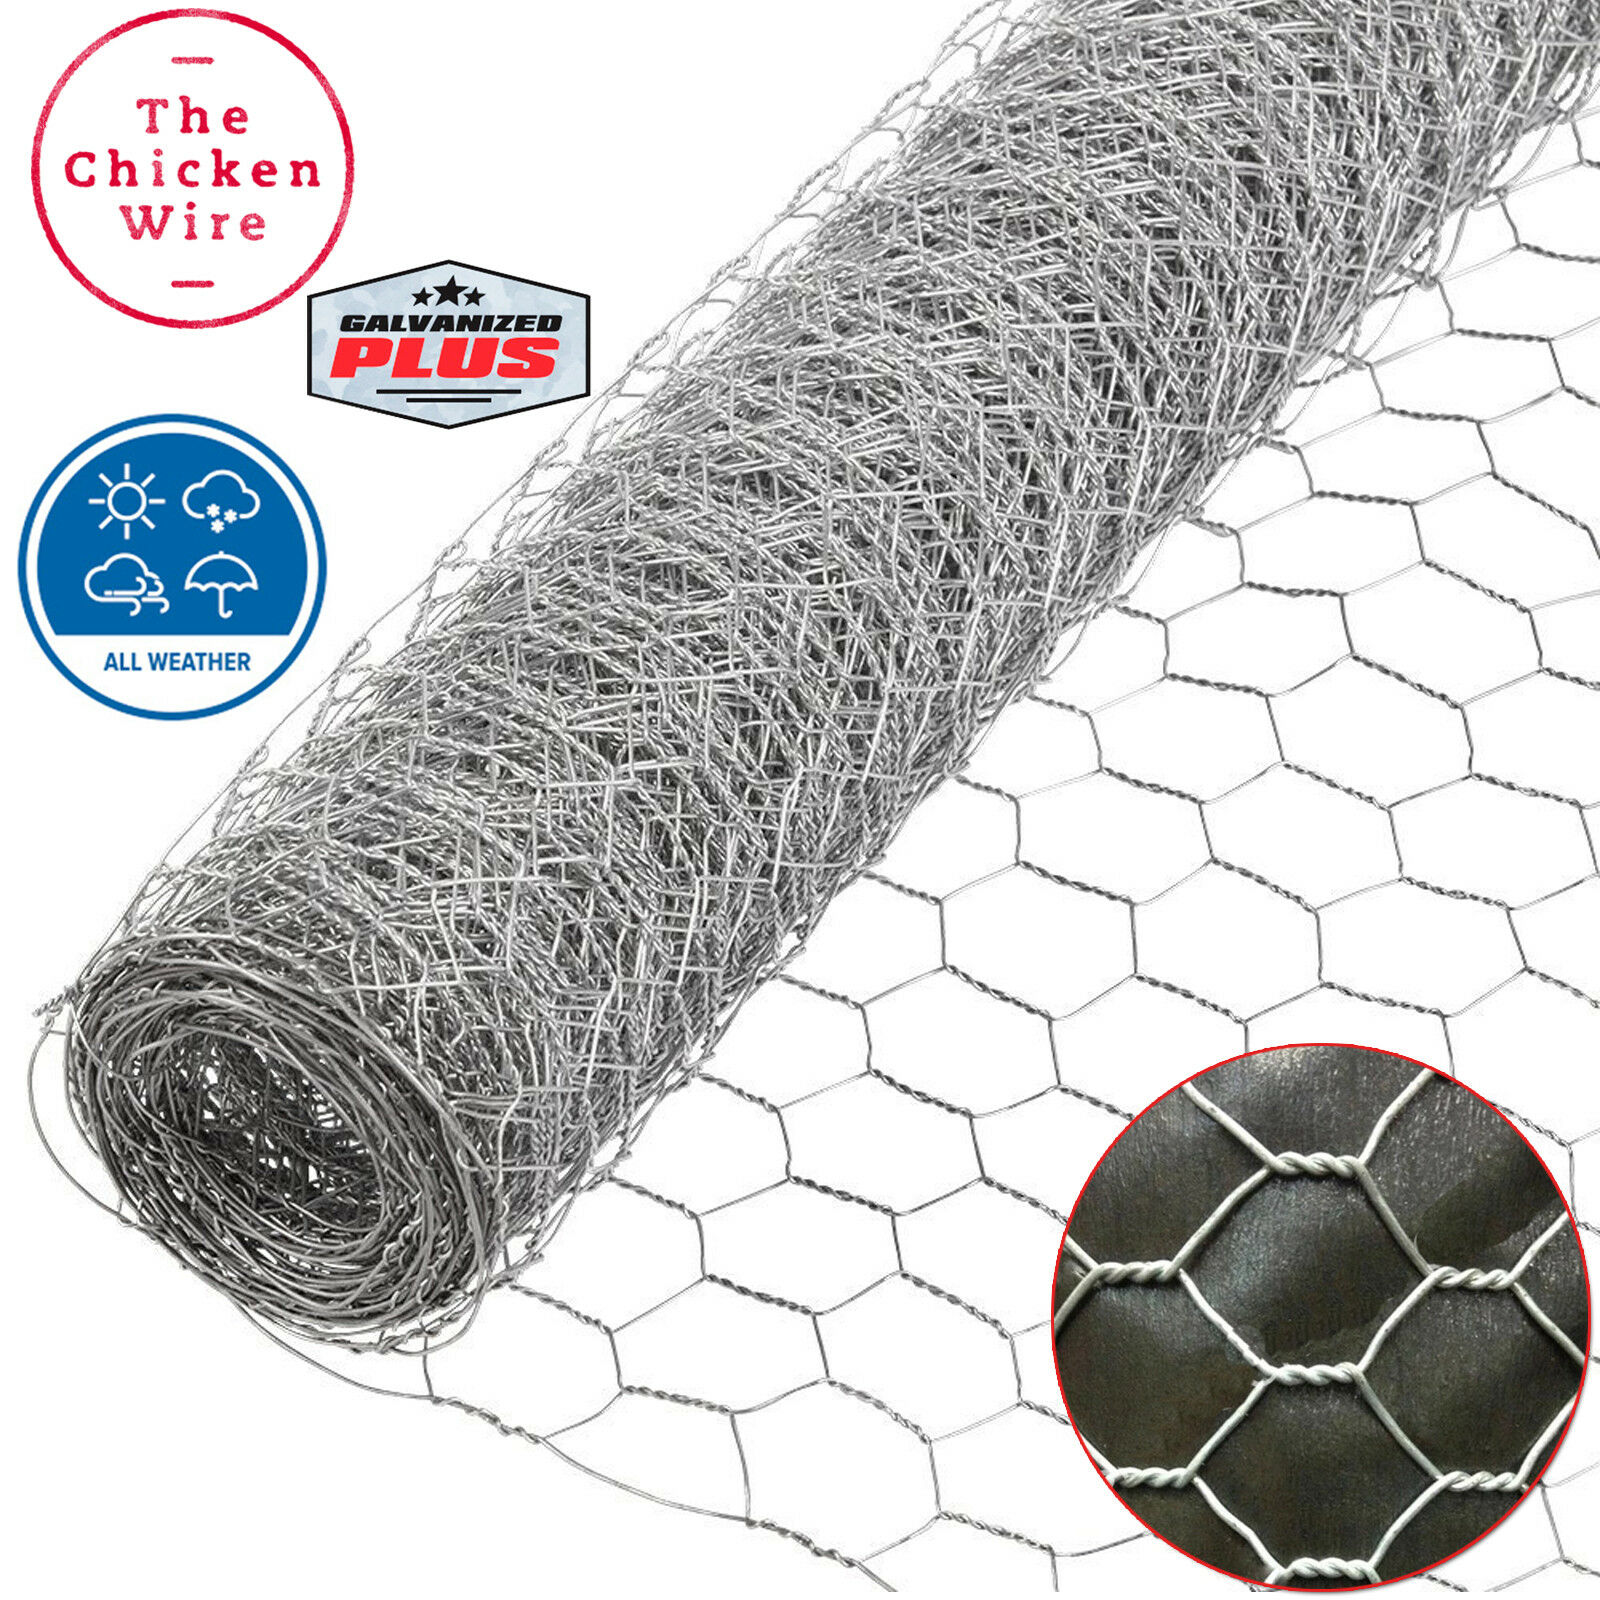 CHICKEN COOP WIRE GALVANIZED STEEL POULTRY NETTING FRAME MESH ...